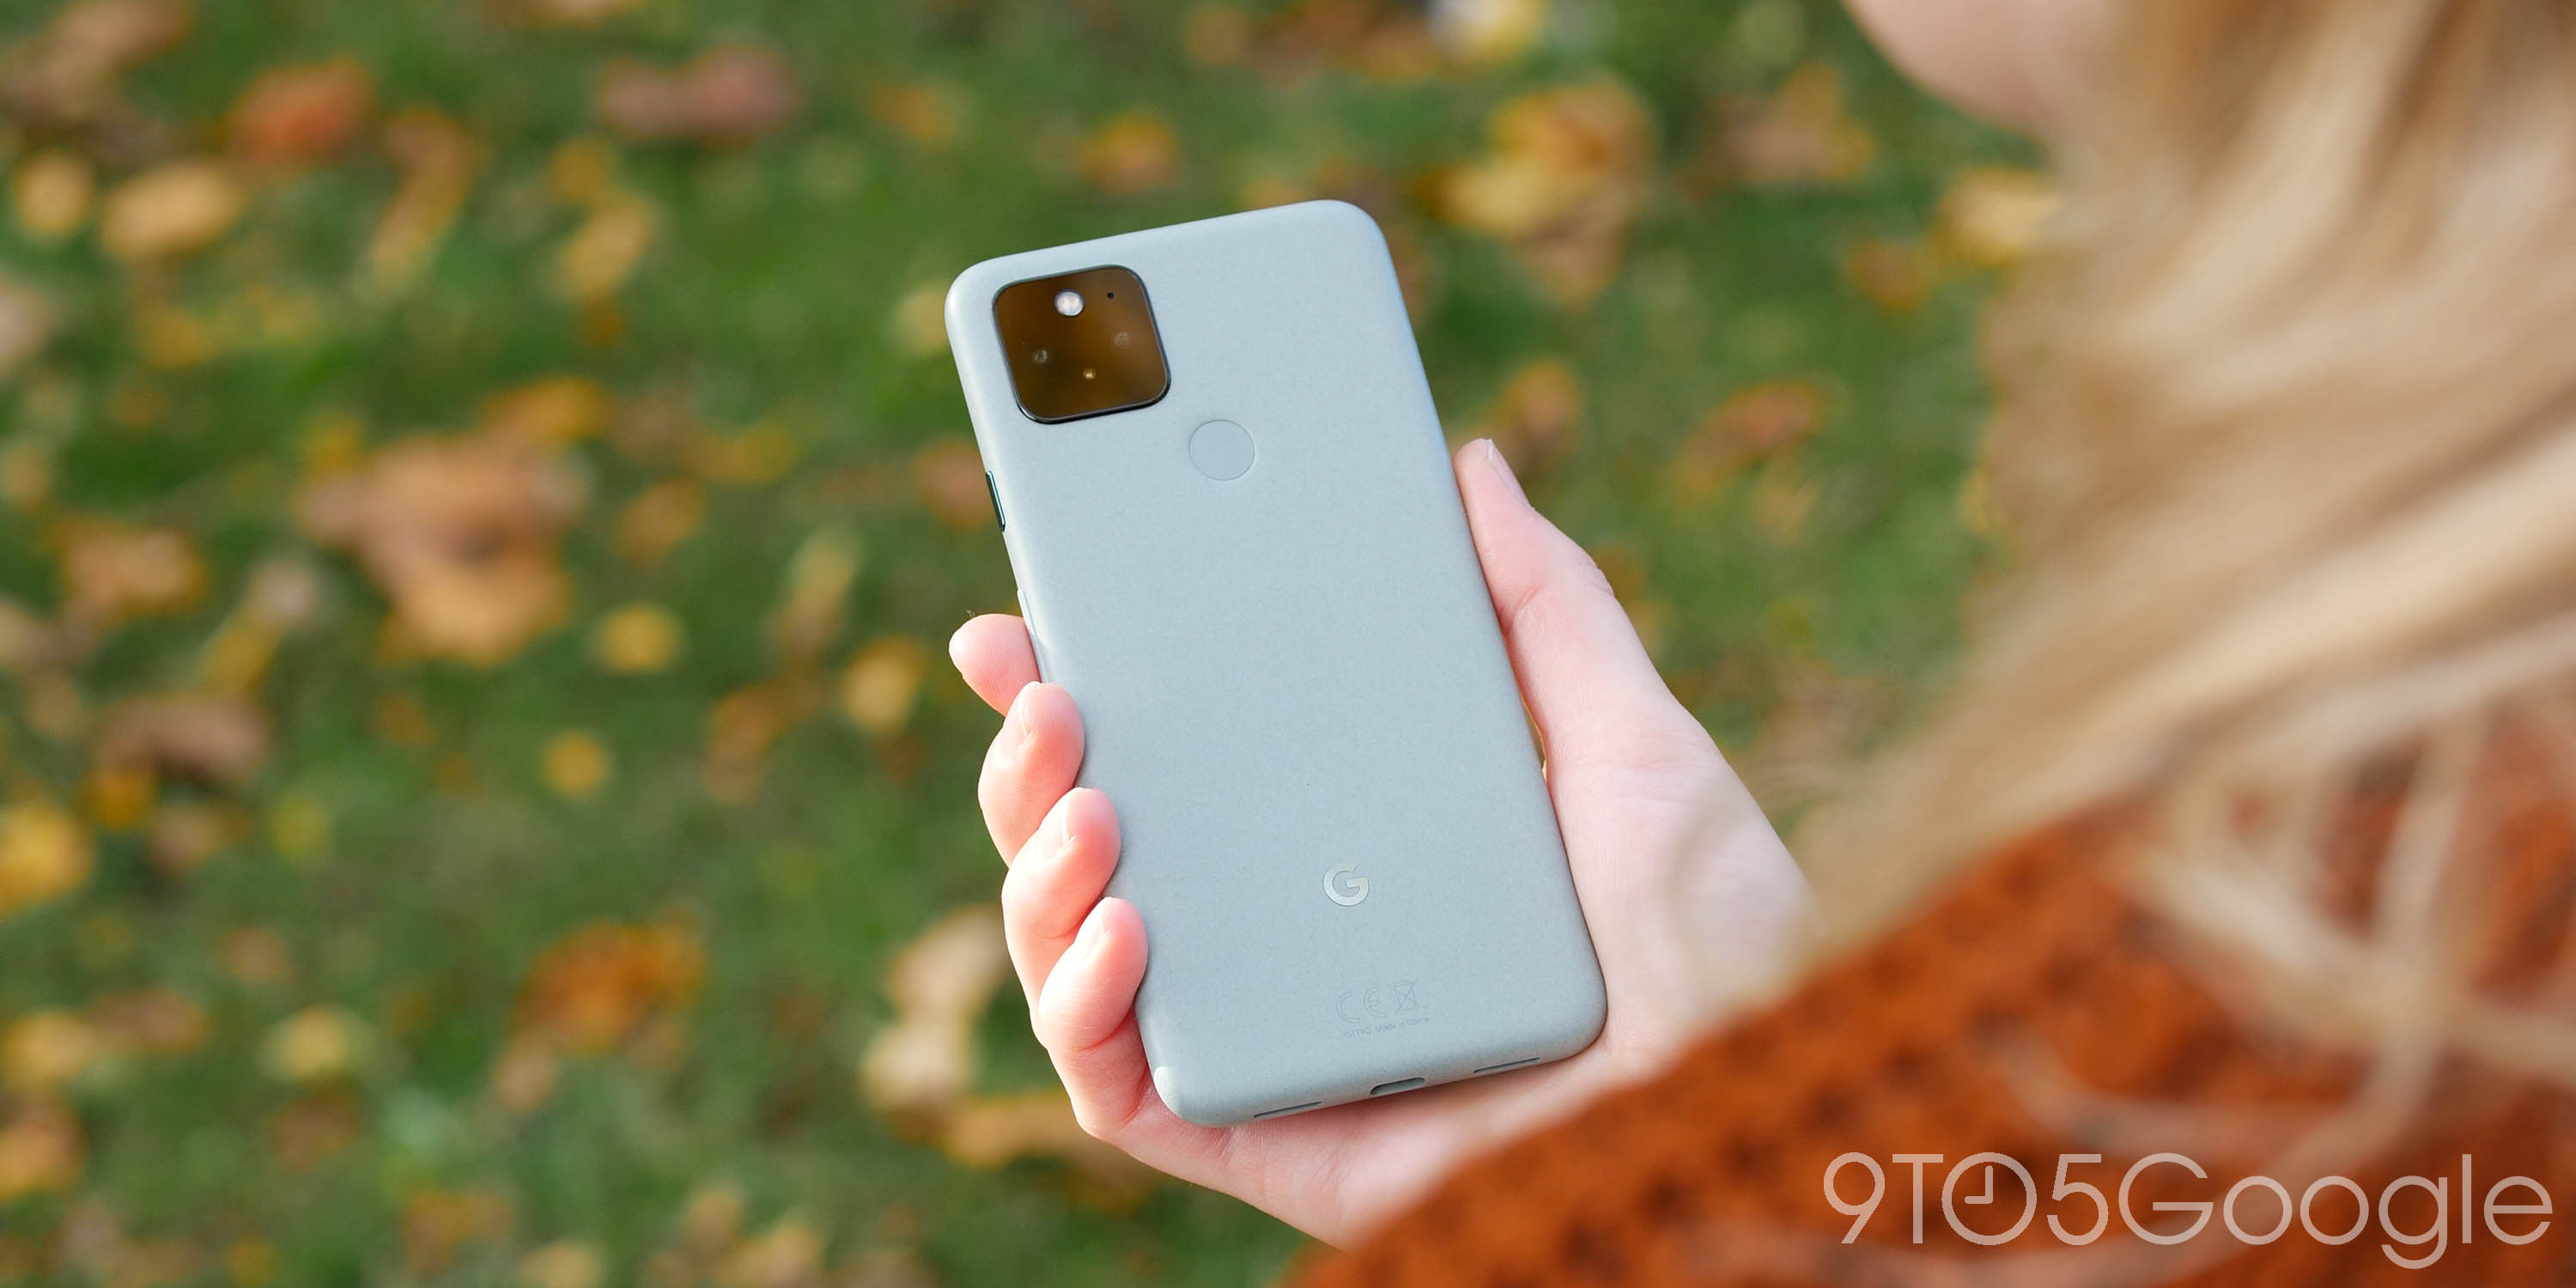 What are your first impressions of the Google Pixel 5? [Poll] – 9to5Google